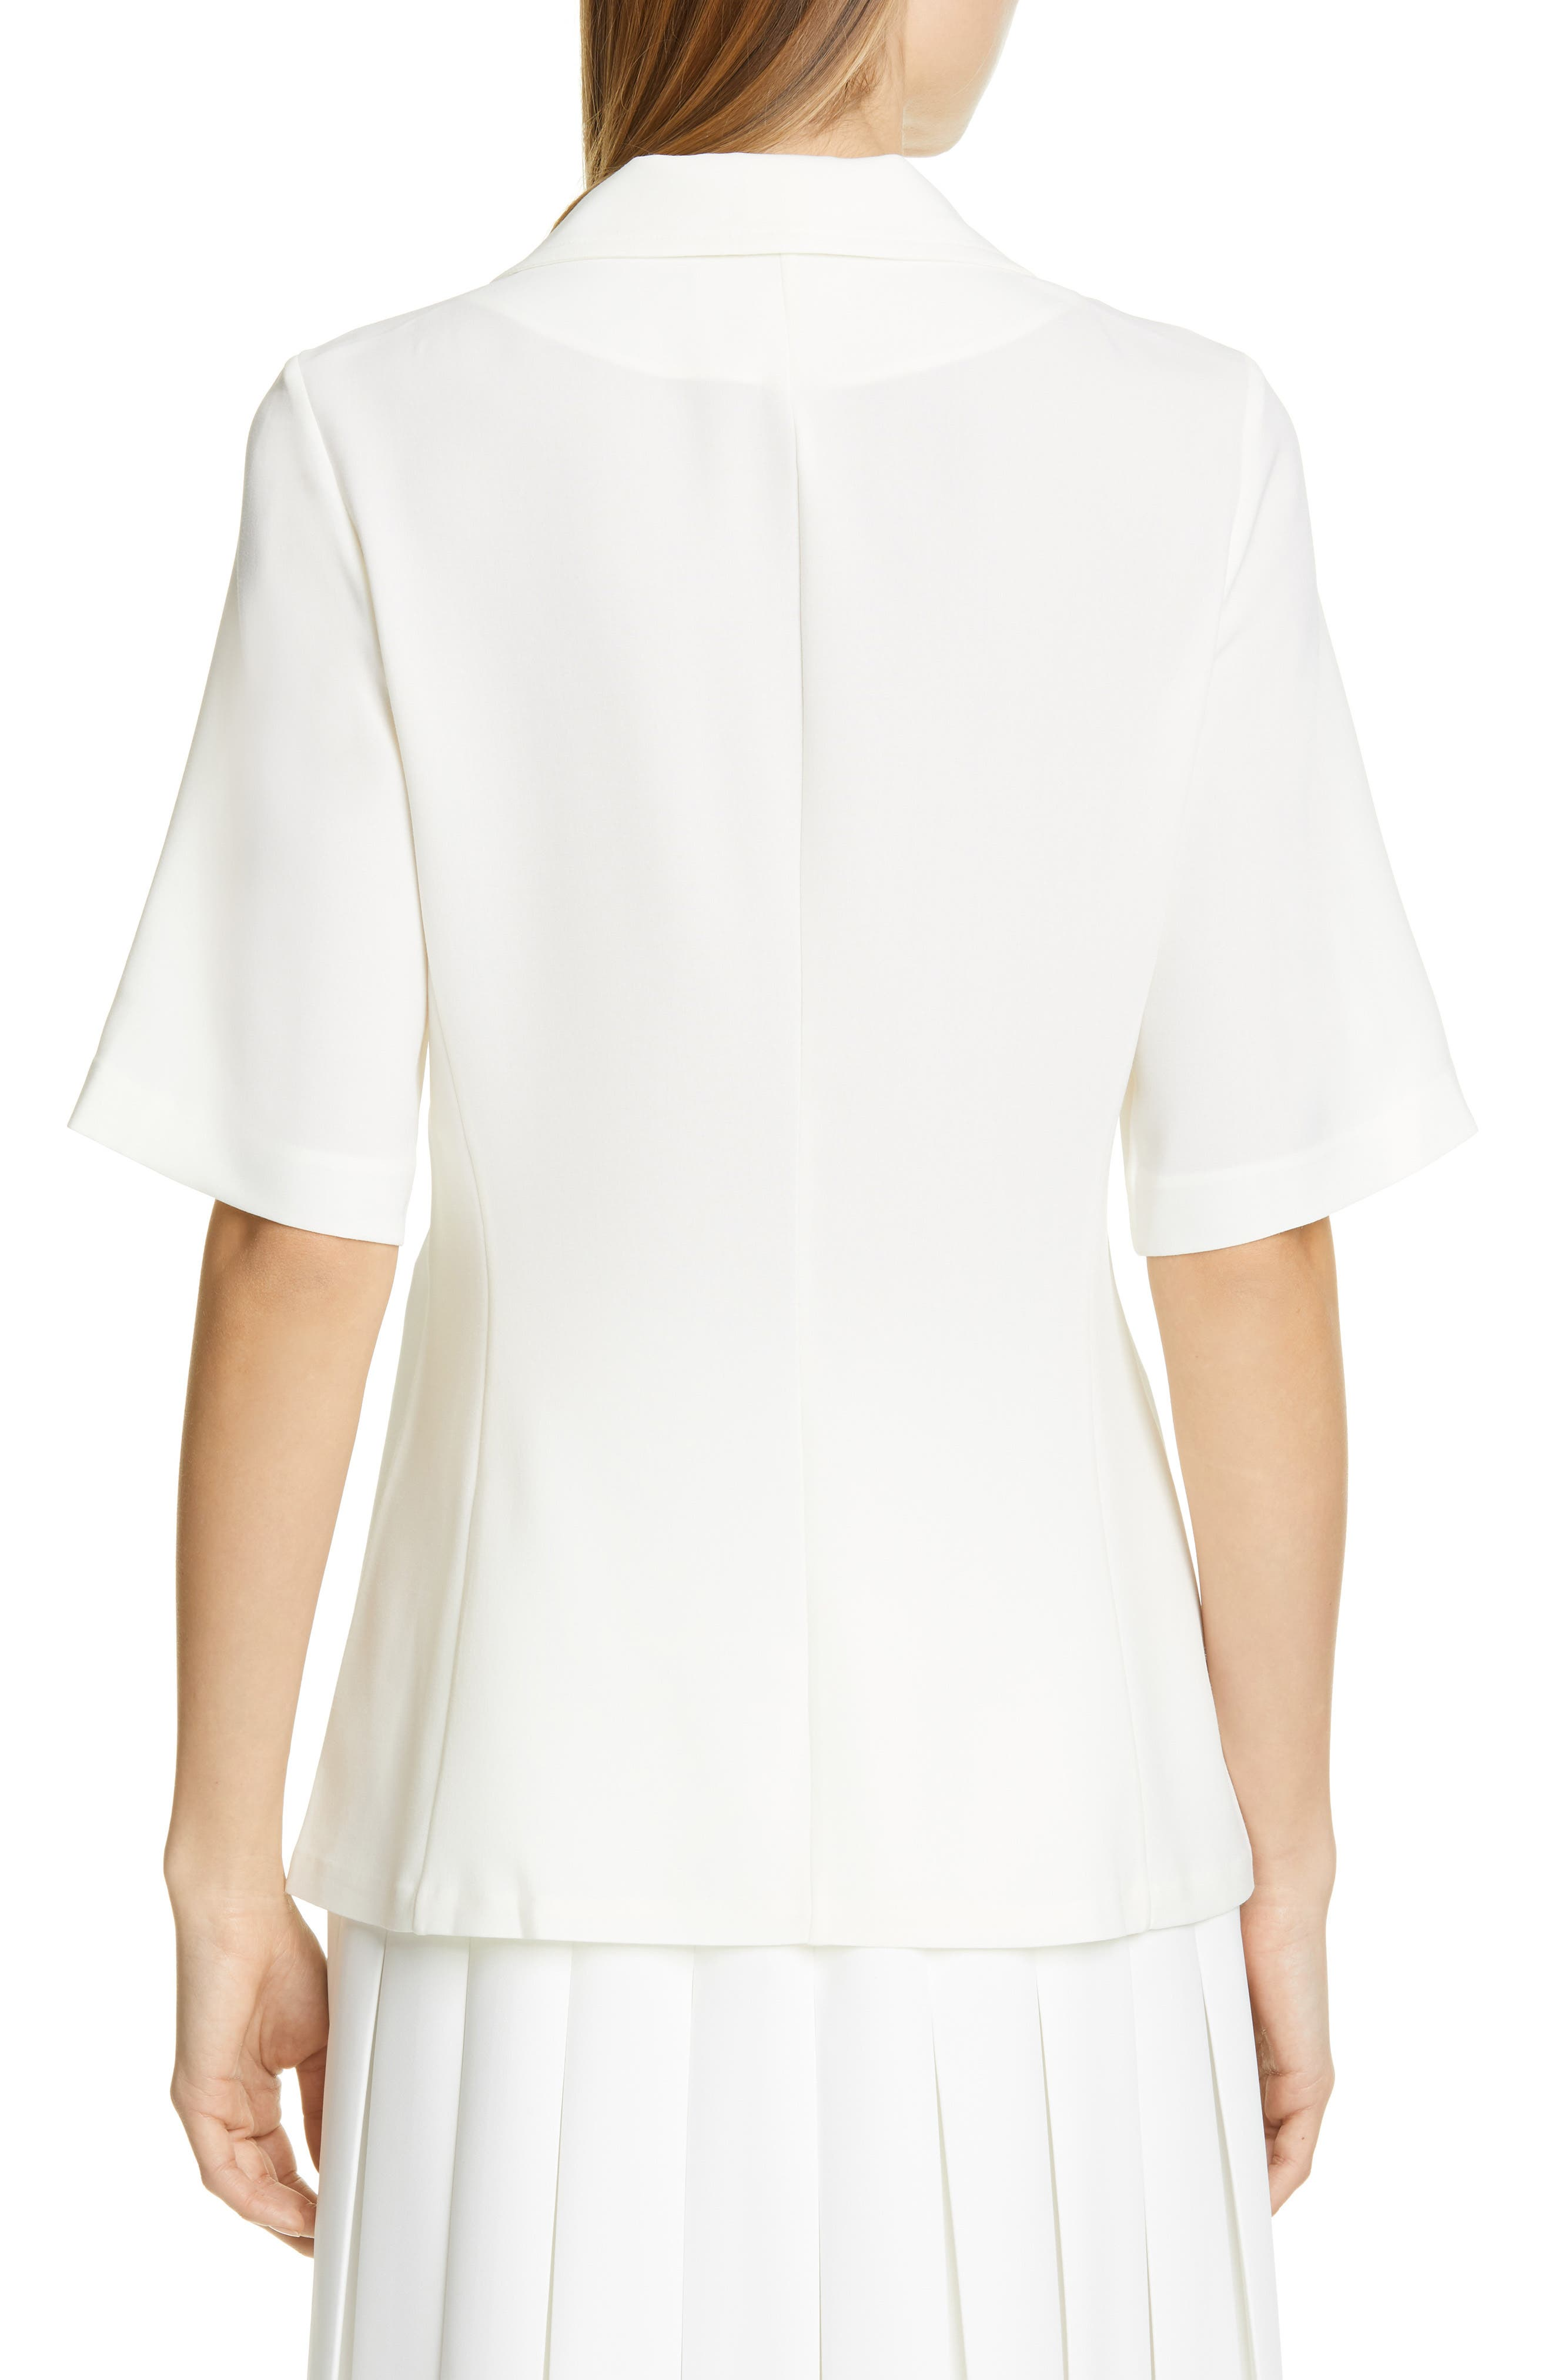 BEAUFILLE, Siner Blouse, Alternate thumbnail 2, color, WHITE